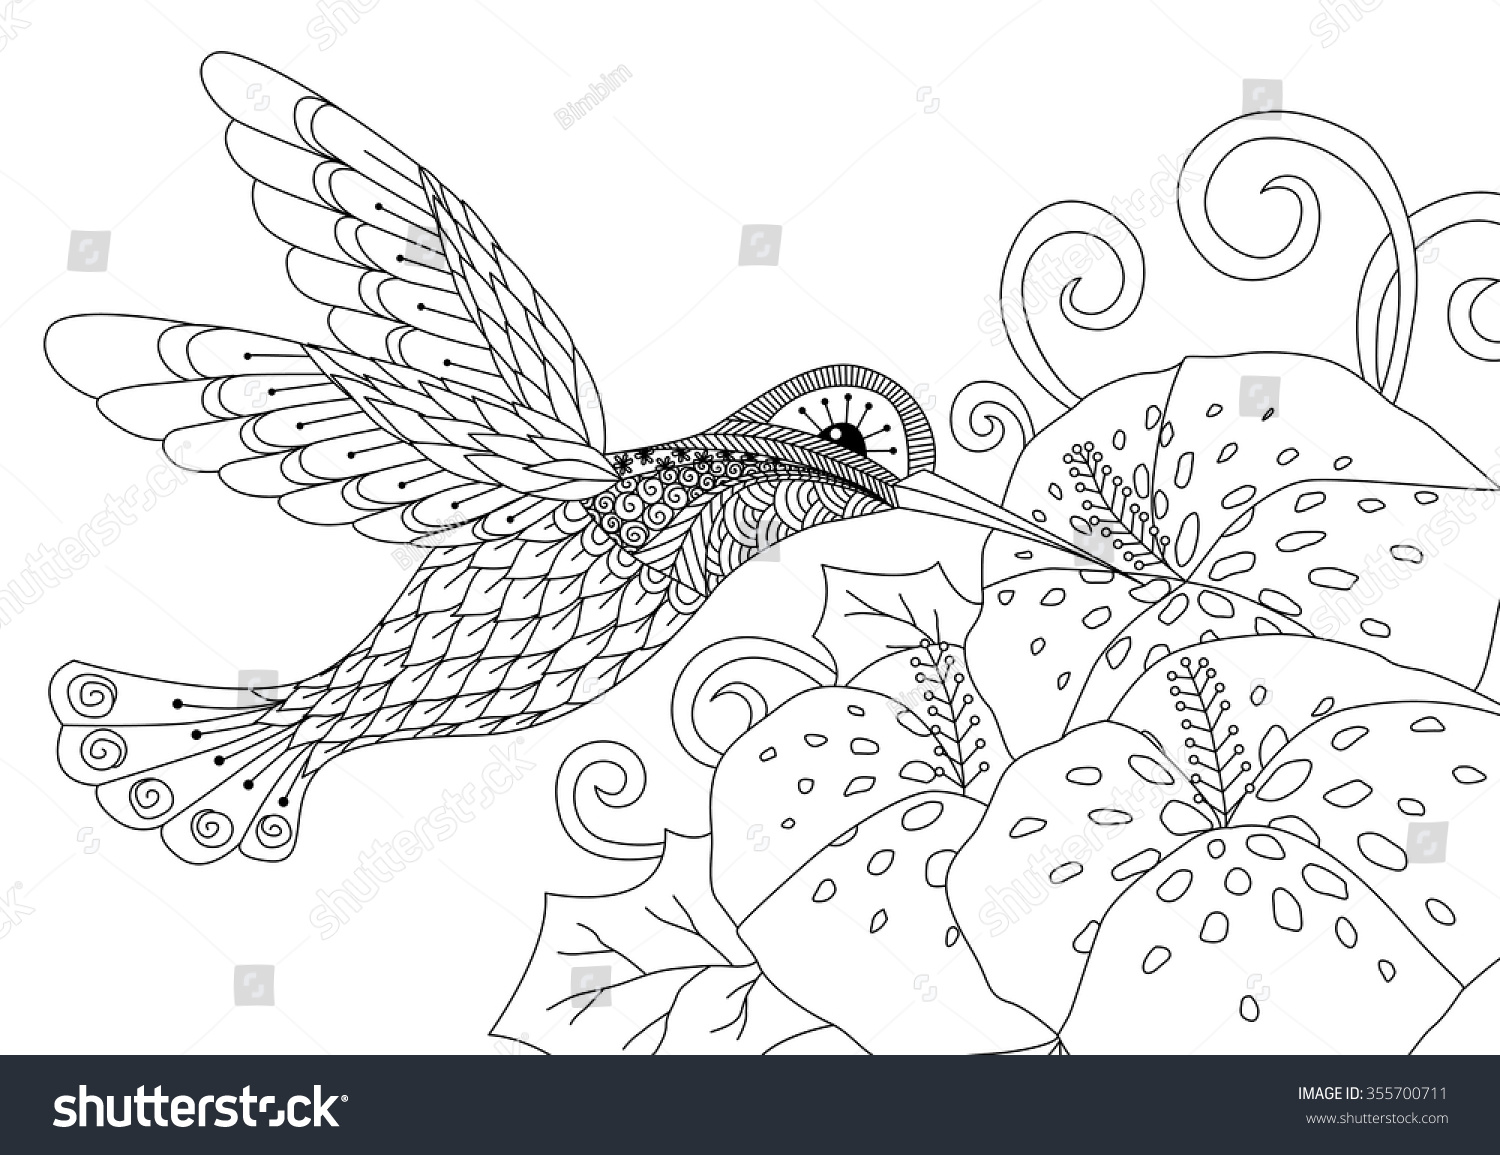 zentangle humming bird design coloring book stock vector 355700711